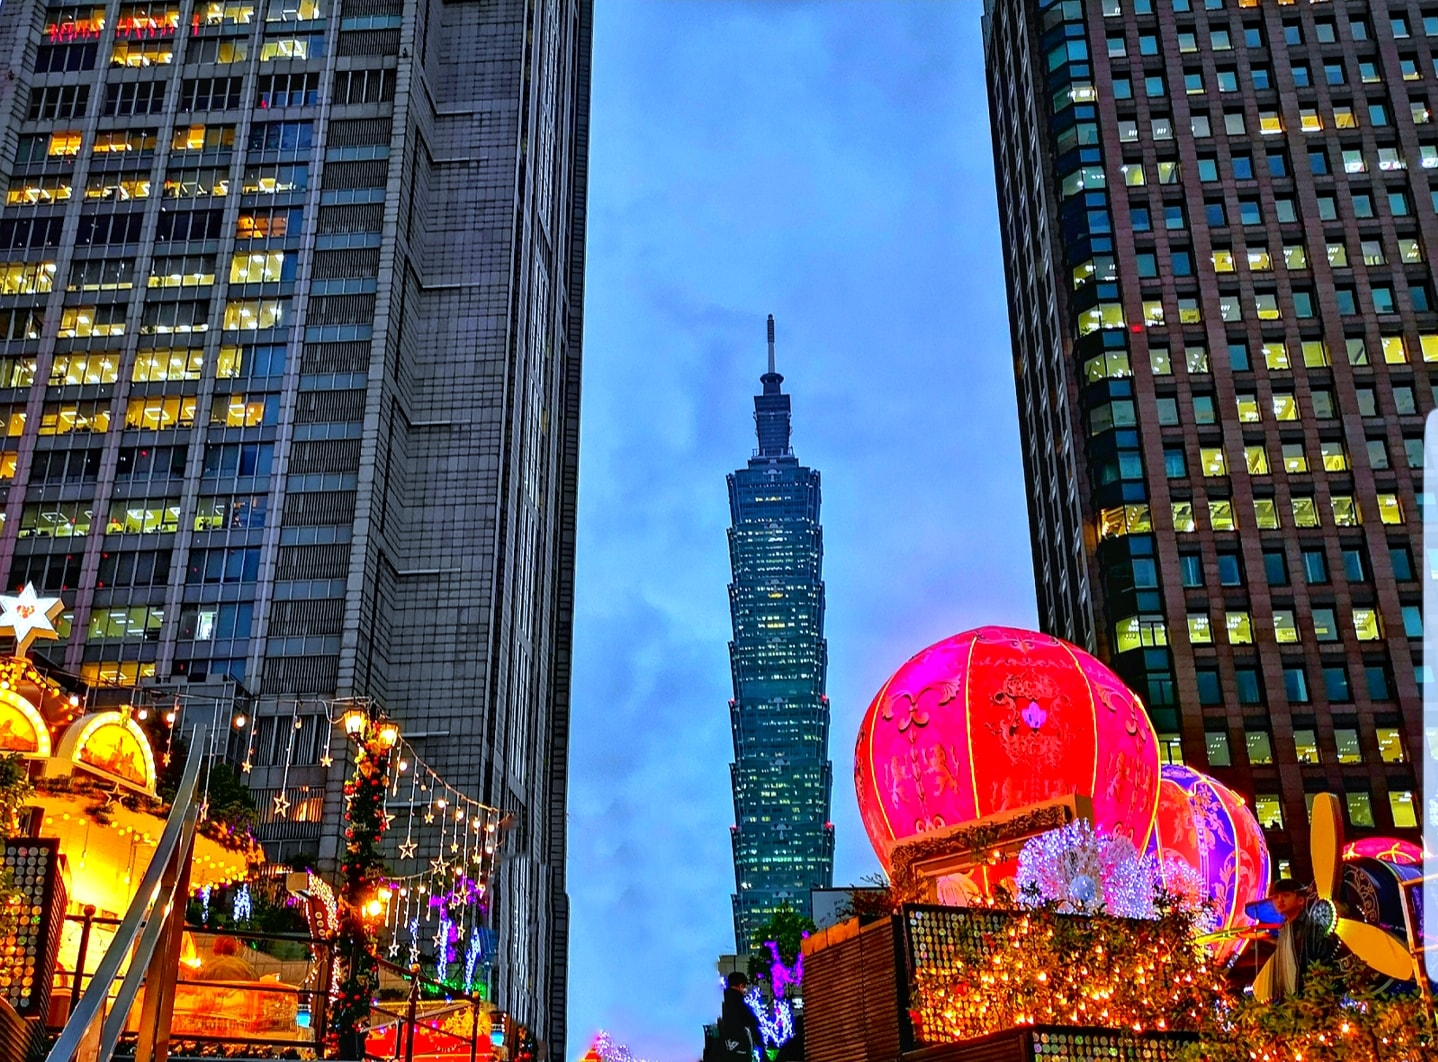 Taipei 101, shopping malls and fancy hotels in Taipei Xinyi Shopping District are colorfully decorated during the Christmas season. (Image: Courtesy of Xing-Mei in Keelung)